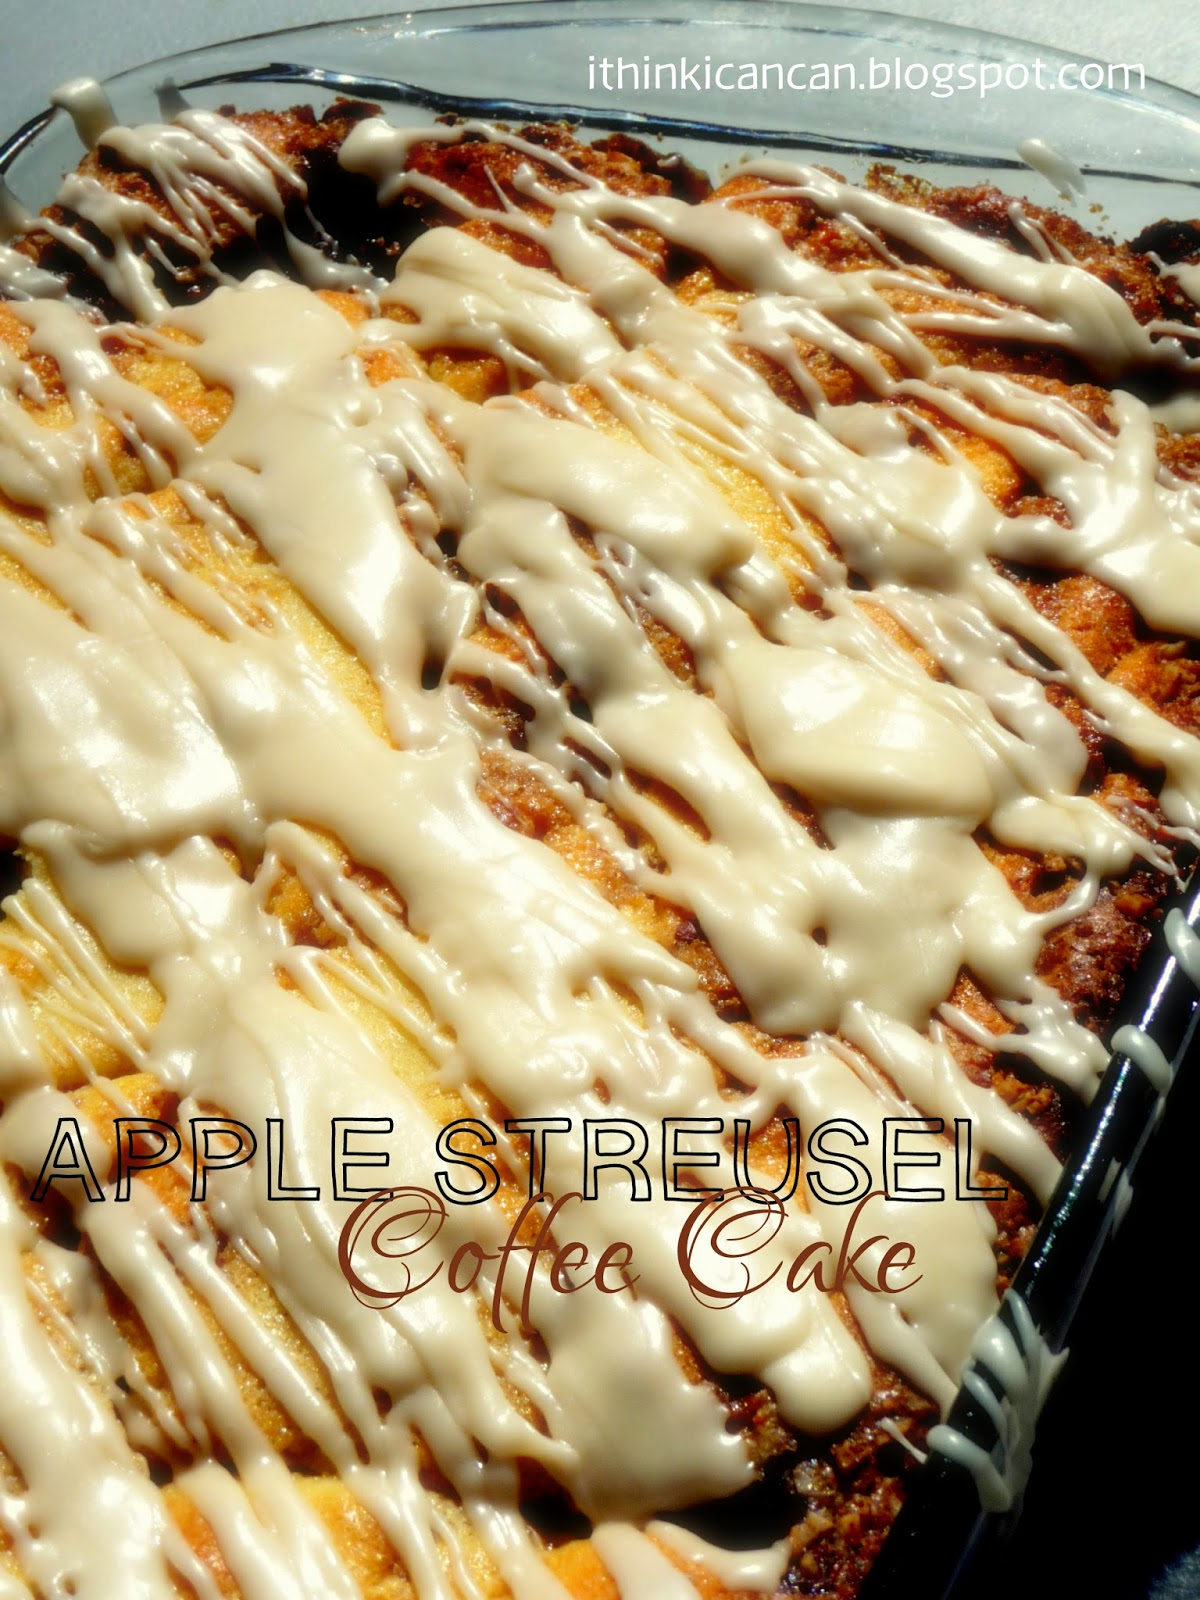 {I Think I Can} Apple Streusel Coffee Cake